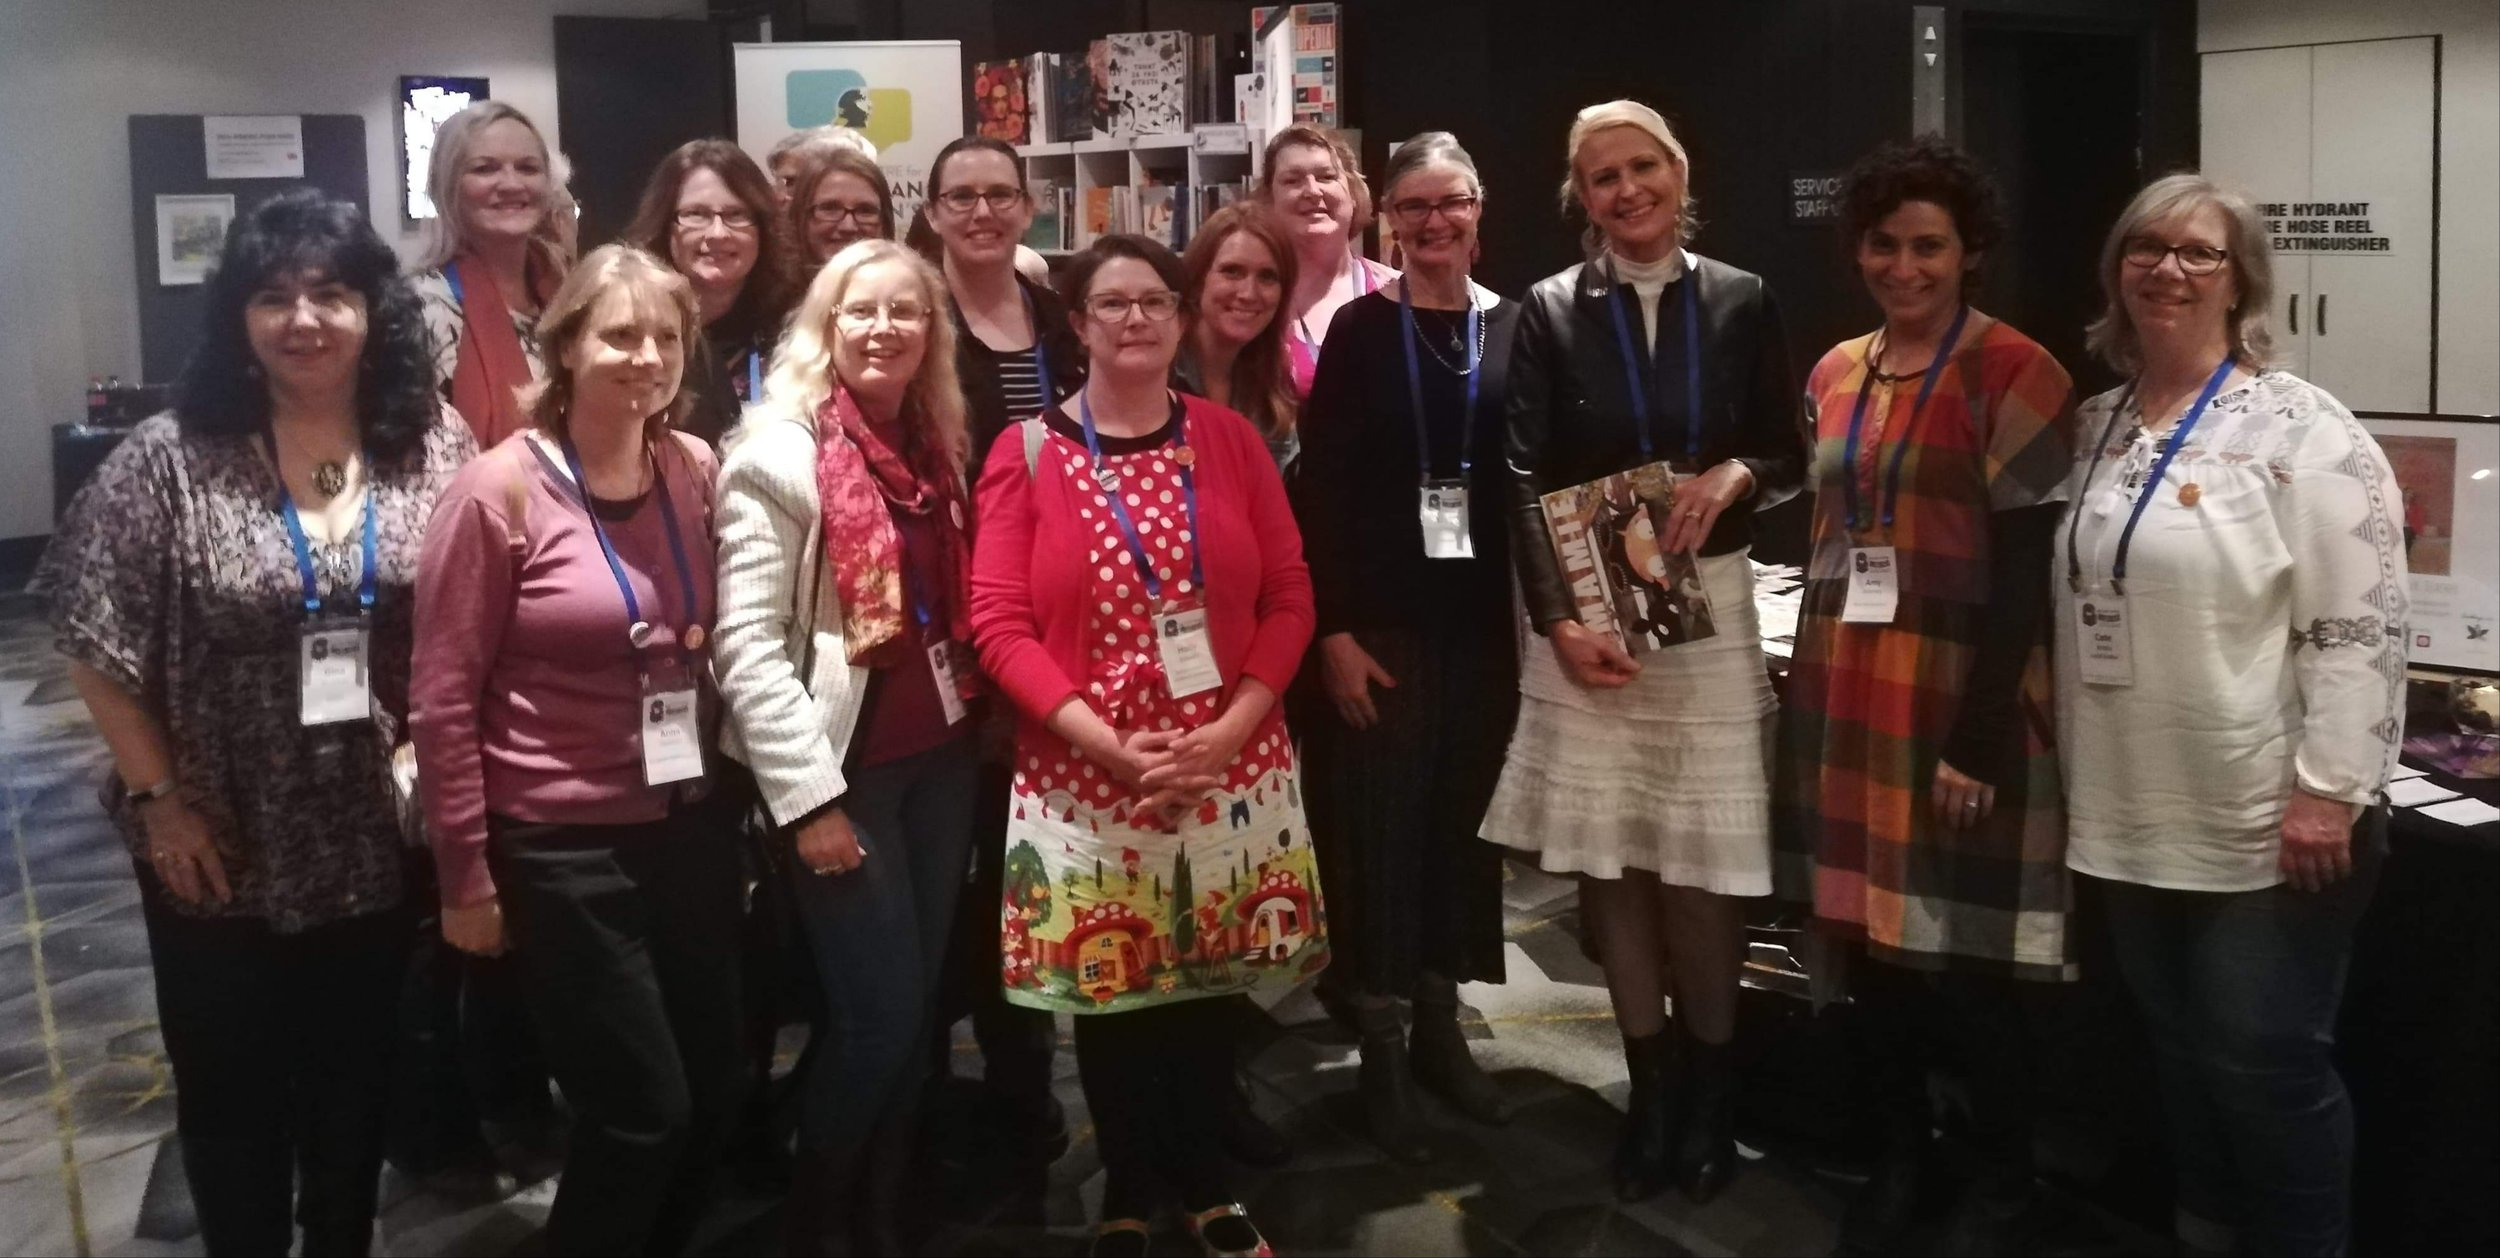 A fabulous flock of 'Ducks' quacking madly at the CBCA conference.